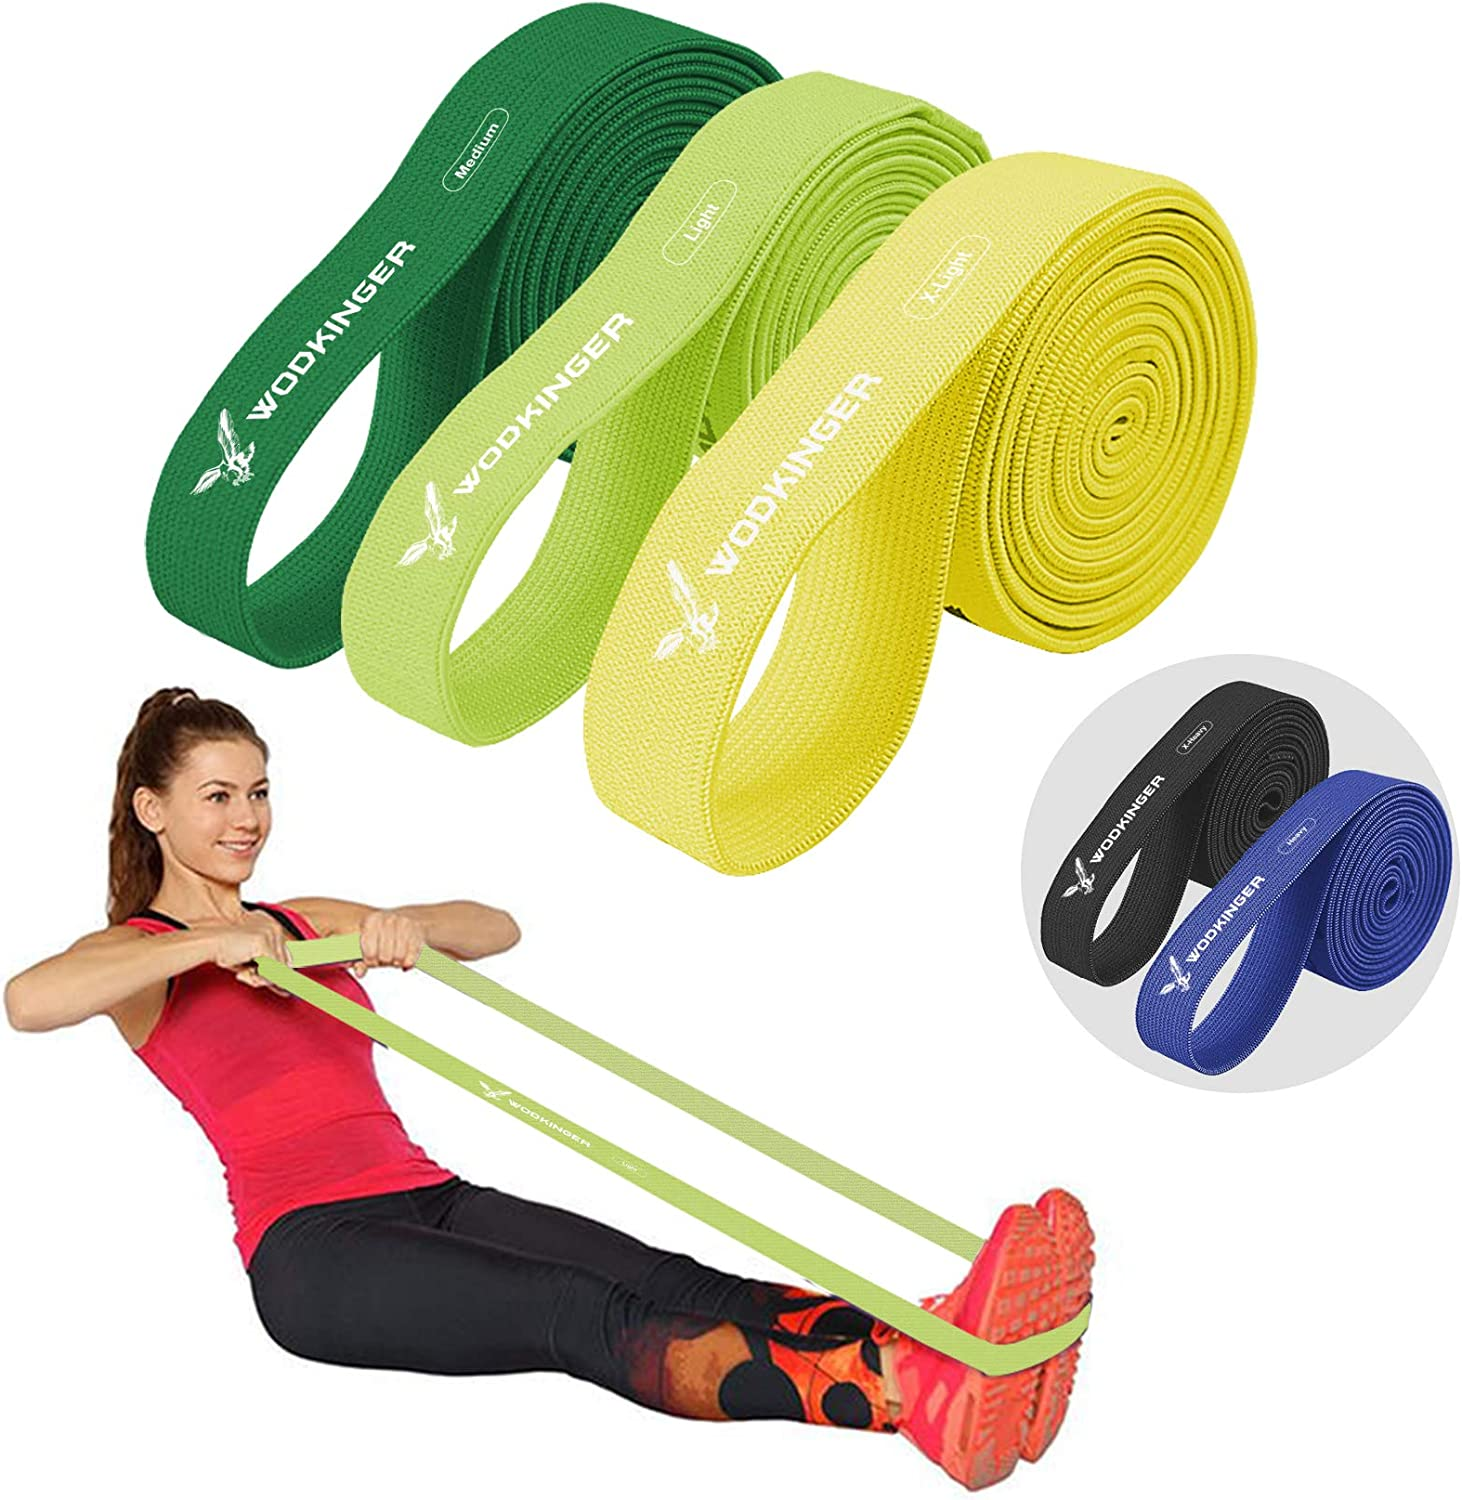 Latex Resistance Streching Band Pull Up Assist Bands Extra Heavy 5 Level